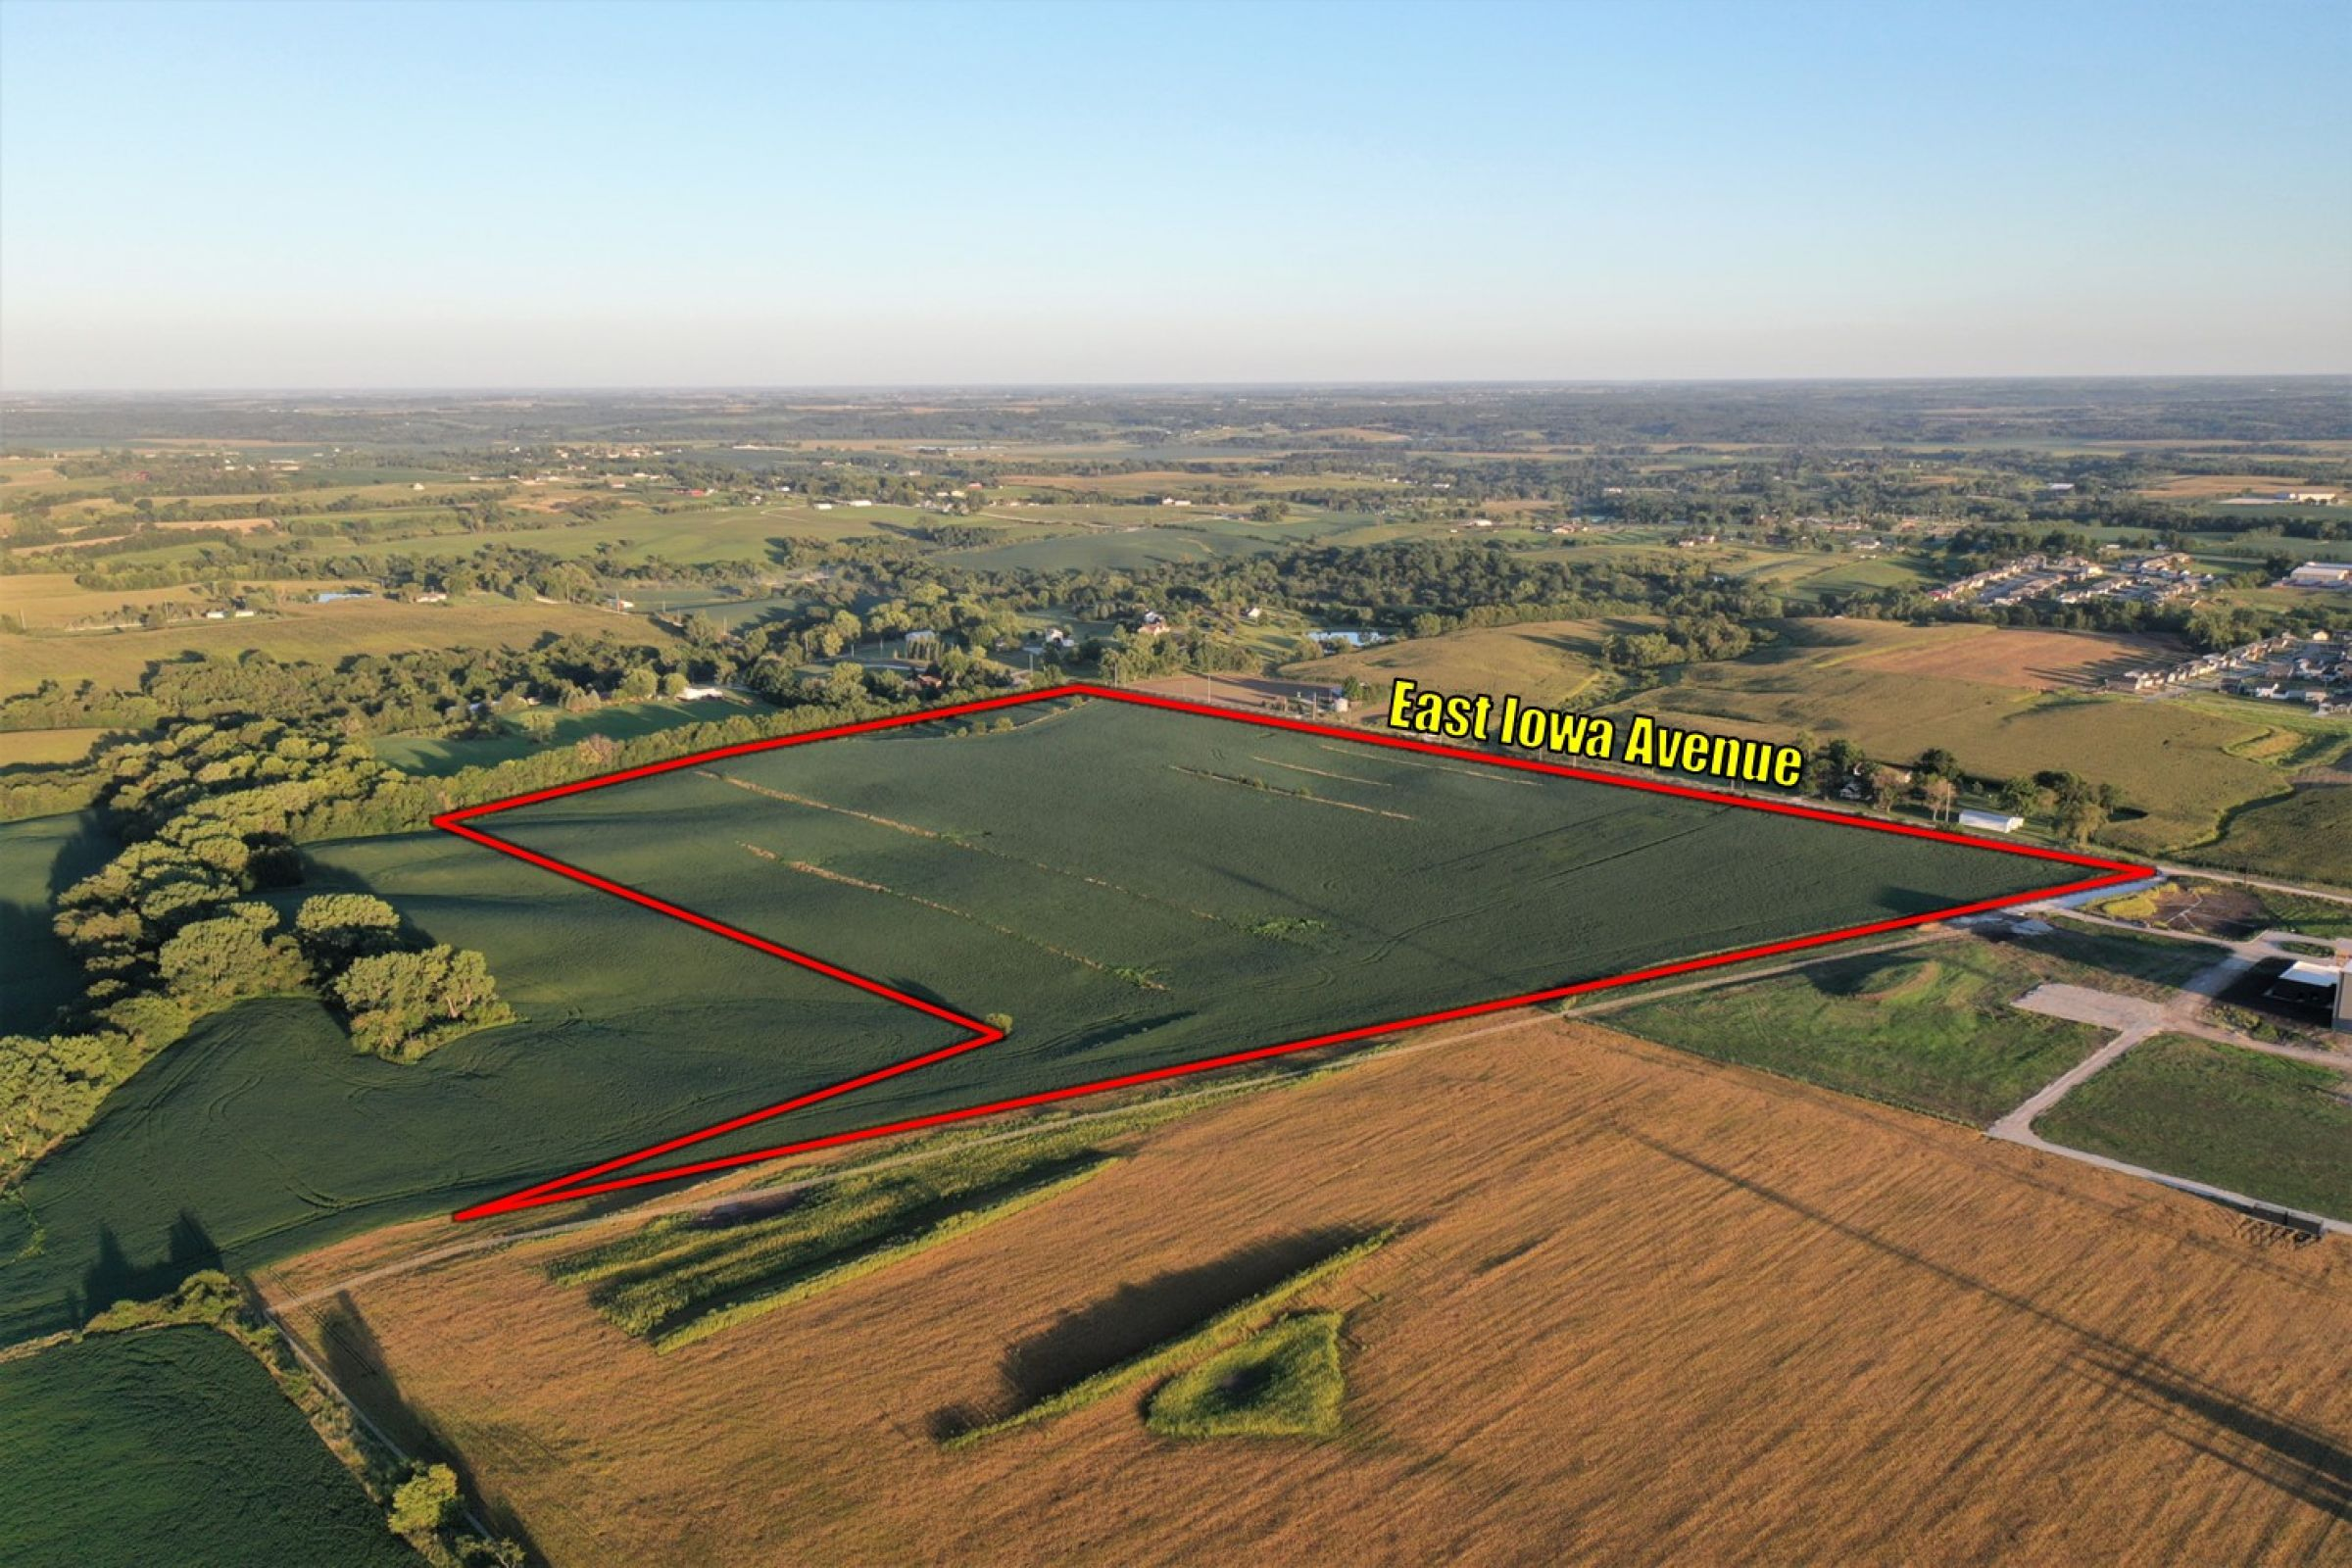 development-land-commercial-warren-county-iowa-50-acres-listing-number-15150-0-2020-08-31-121600.jpg